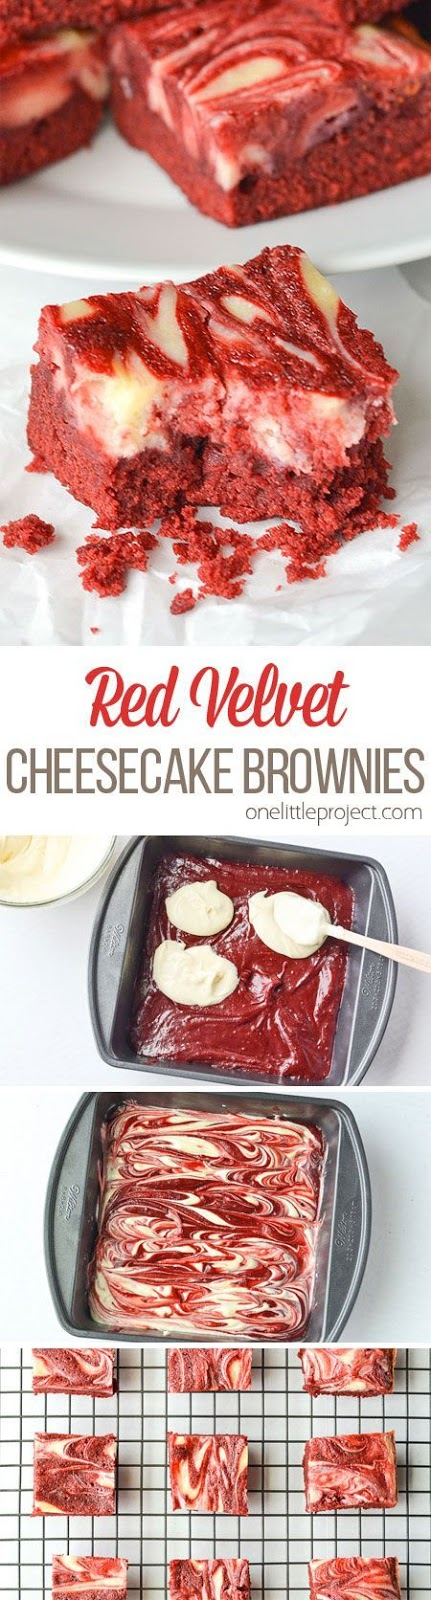 Hi there! It's Kelly from Typically Simple and I am back with a seriously yummy treat recipe! If only computers had scratch and sniff abilities because the delicious, chocolately smell of these red velvet cheesecake brownies baking in the oven would make your mouth water. But since they are so easy to make, you can just whip up a batch in your own kitchen!